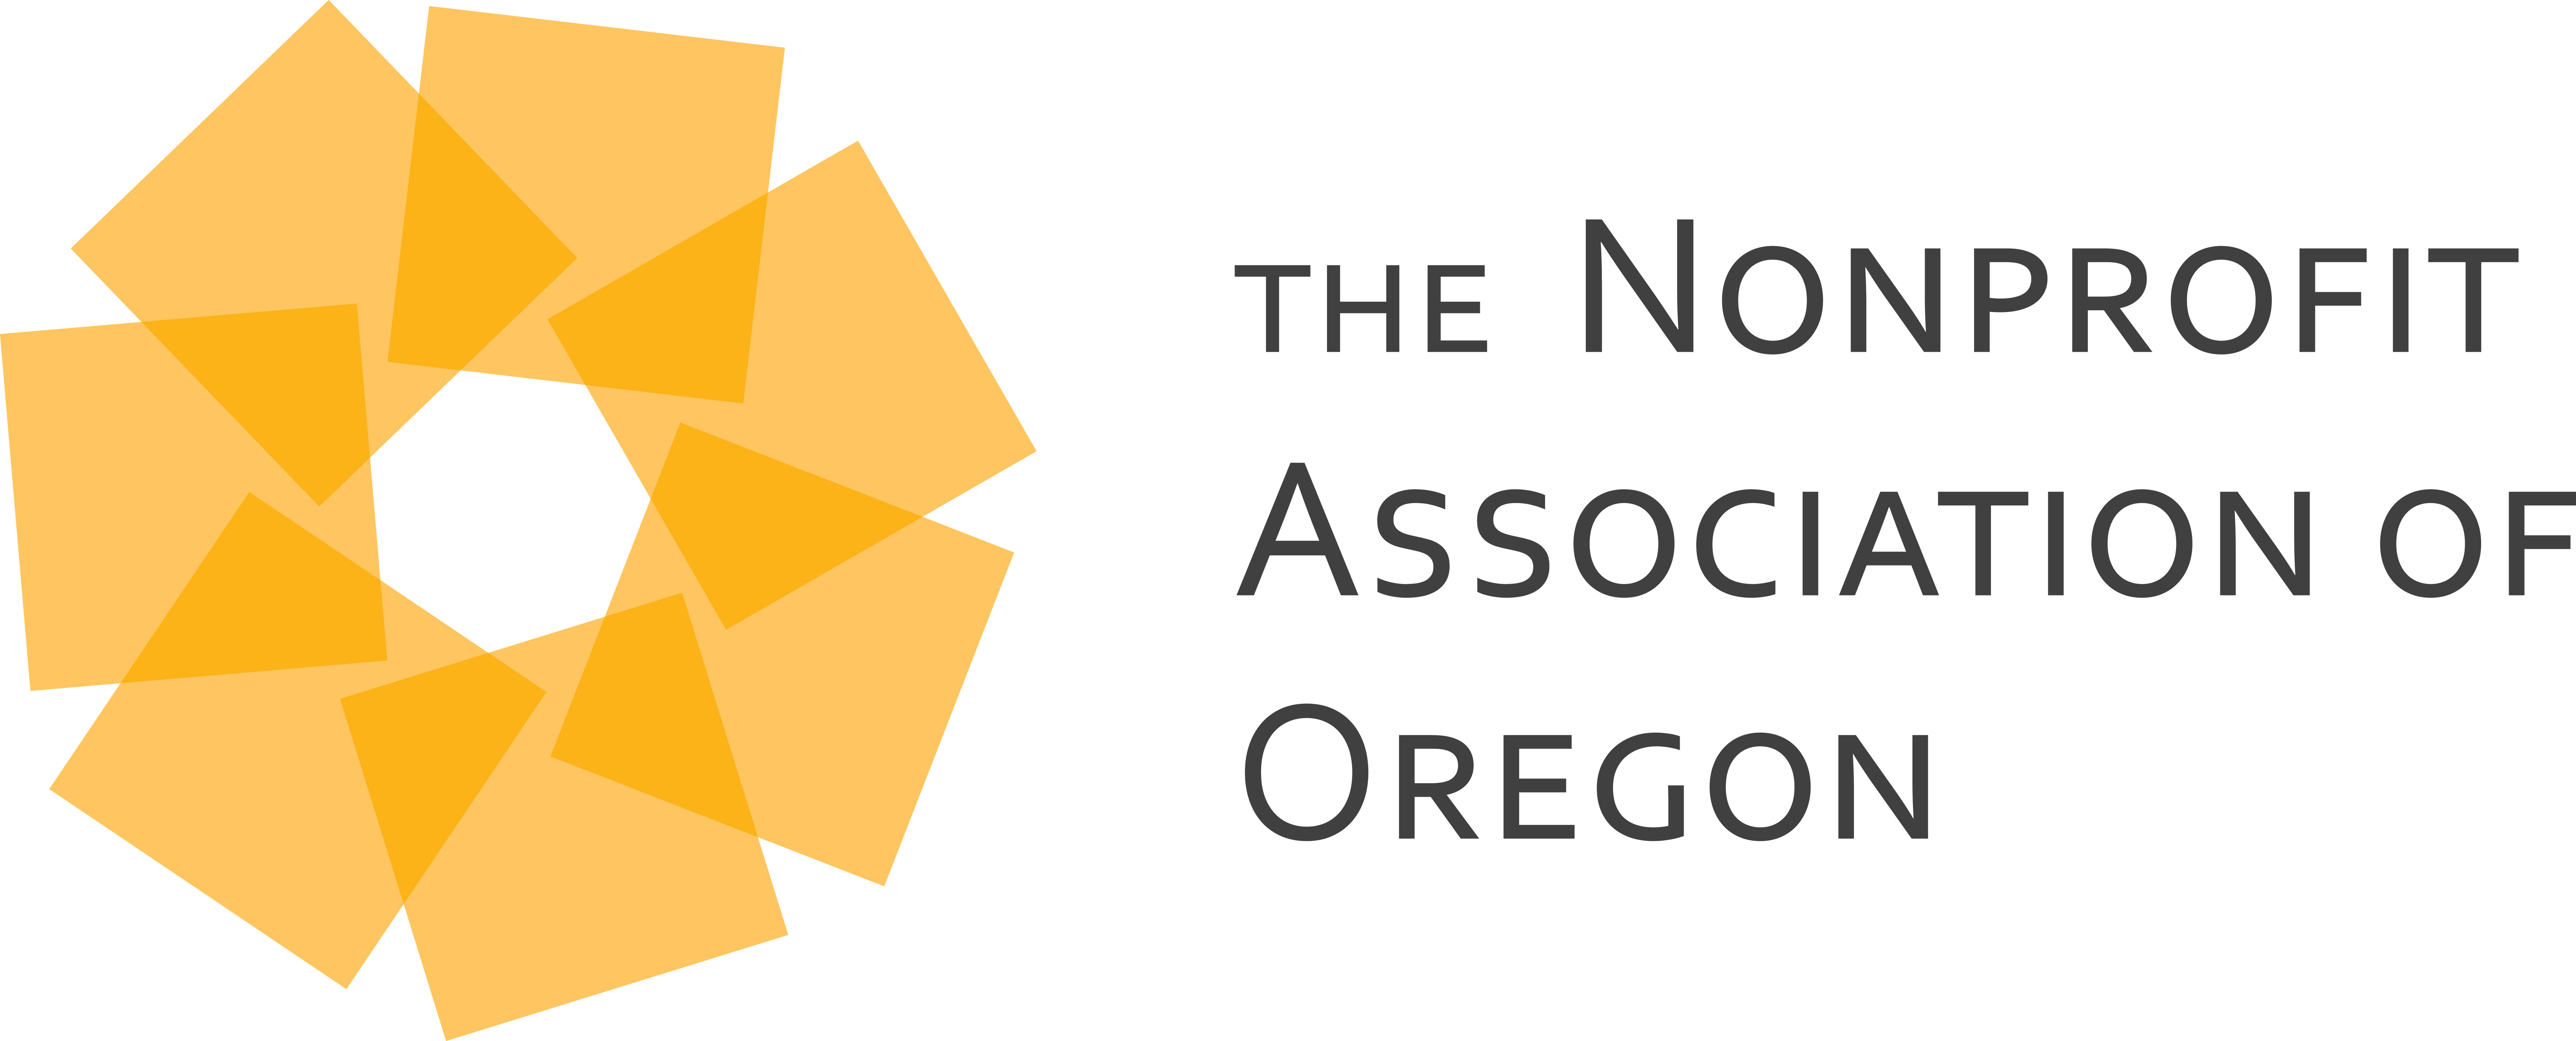 Nonprofit Association of Oregon